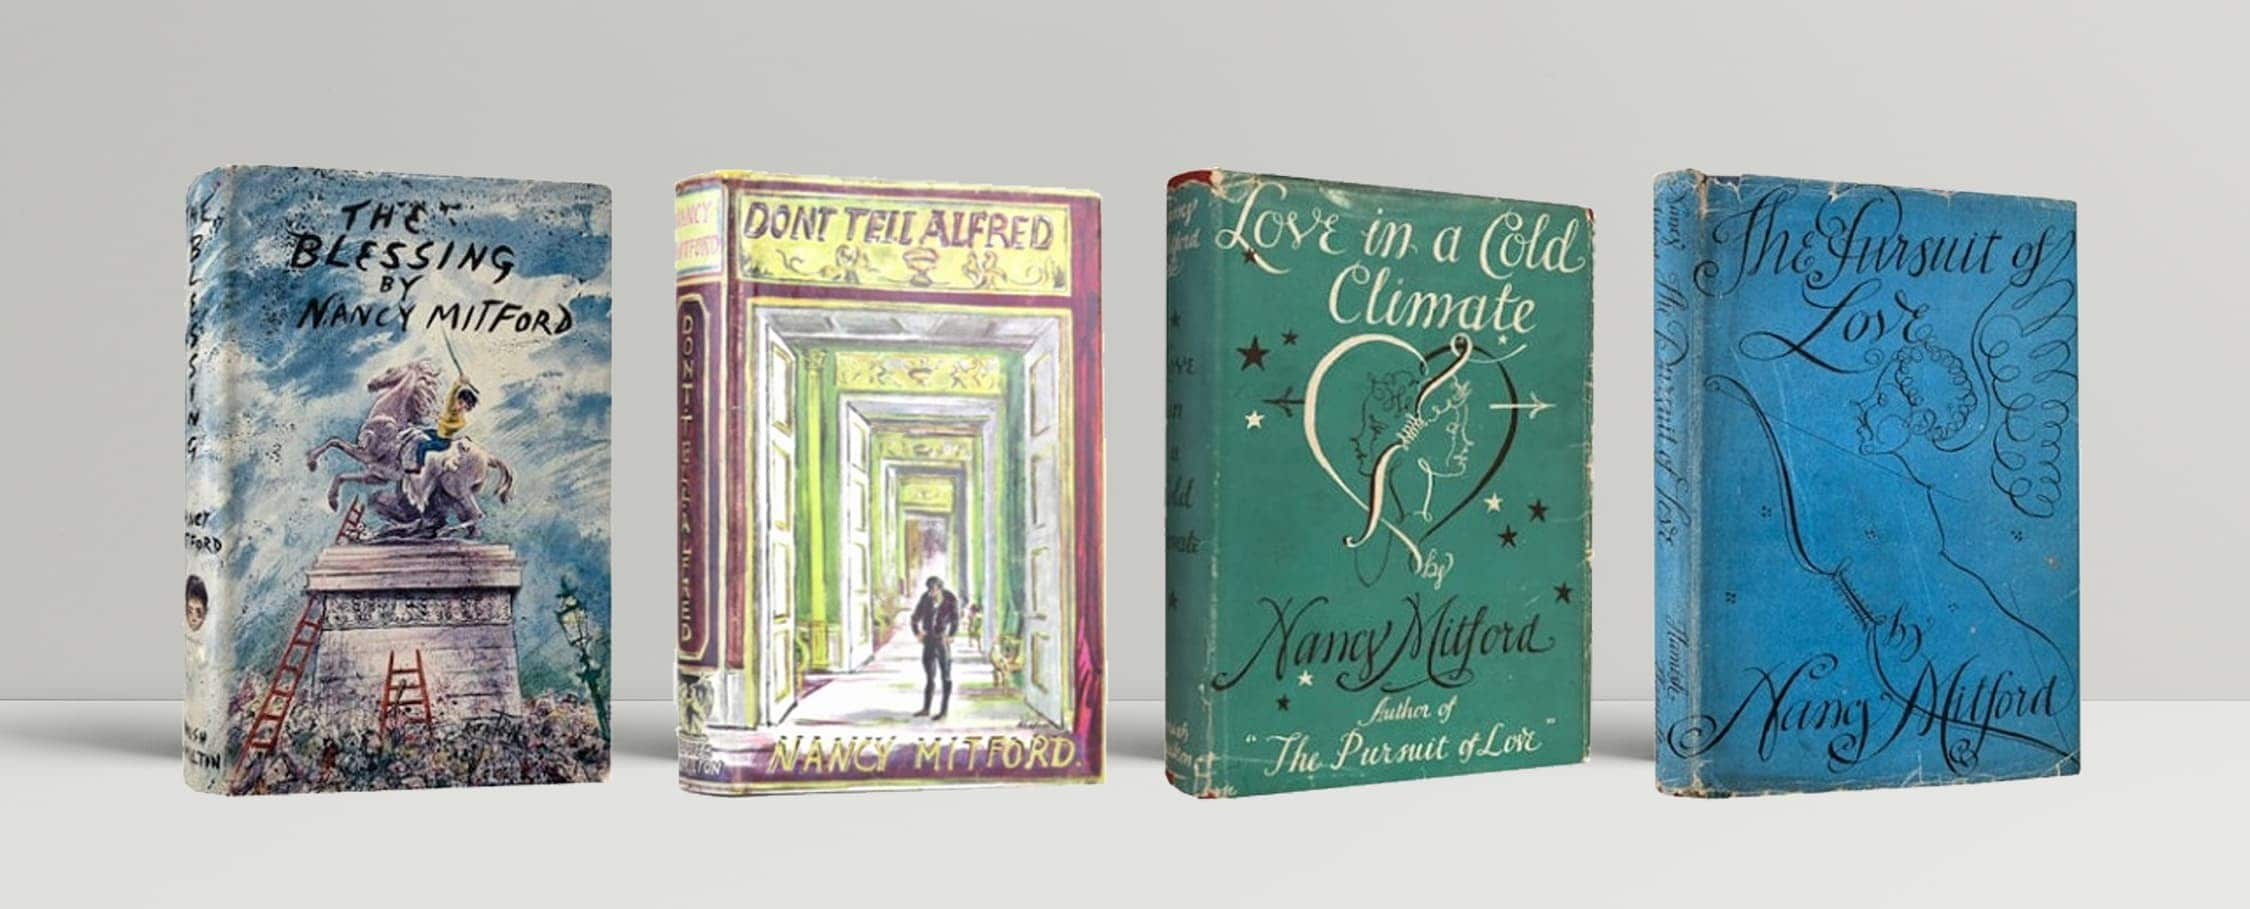 Nancy Mitford Her Life and Works